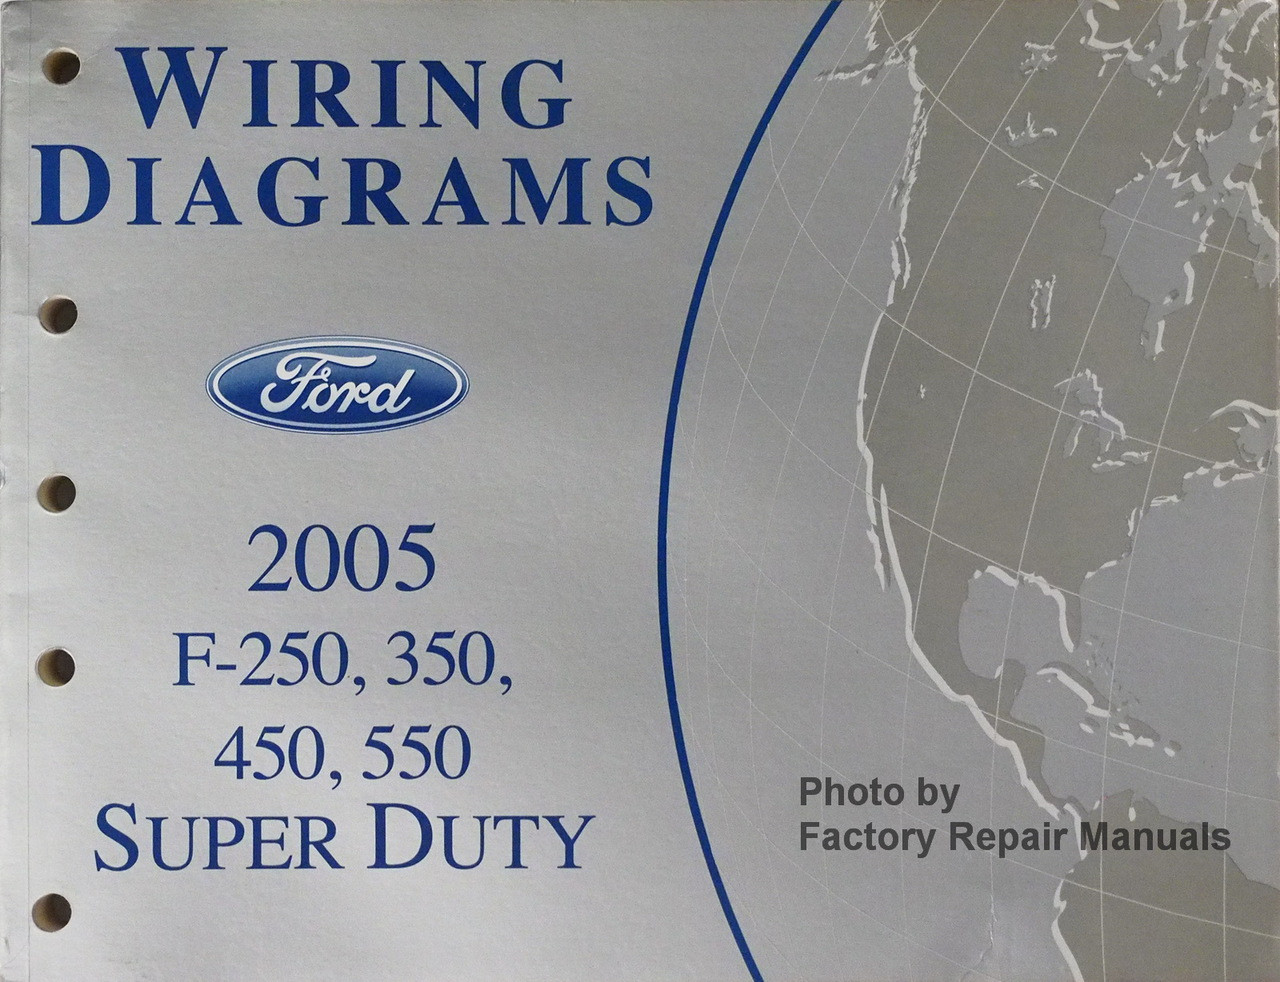 2005 Ford F250 F350 F450 F550 Super Duty Truck Electrical Wiring Diagrams Manual New Factory Repair Manuals